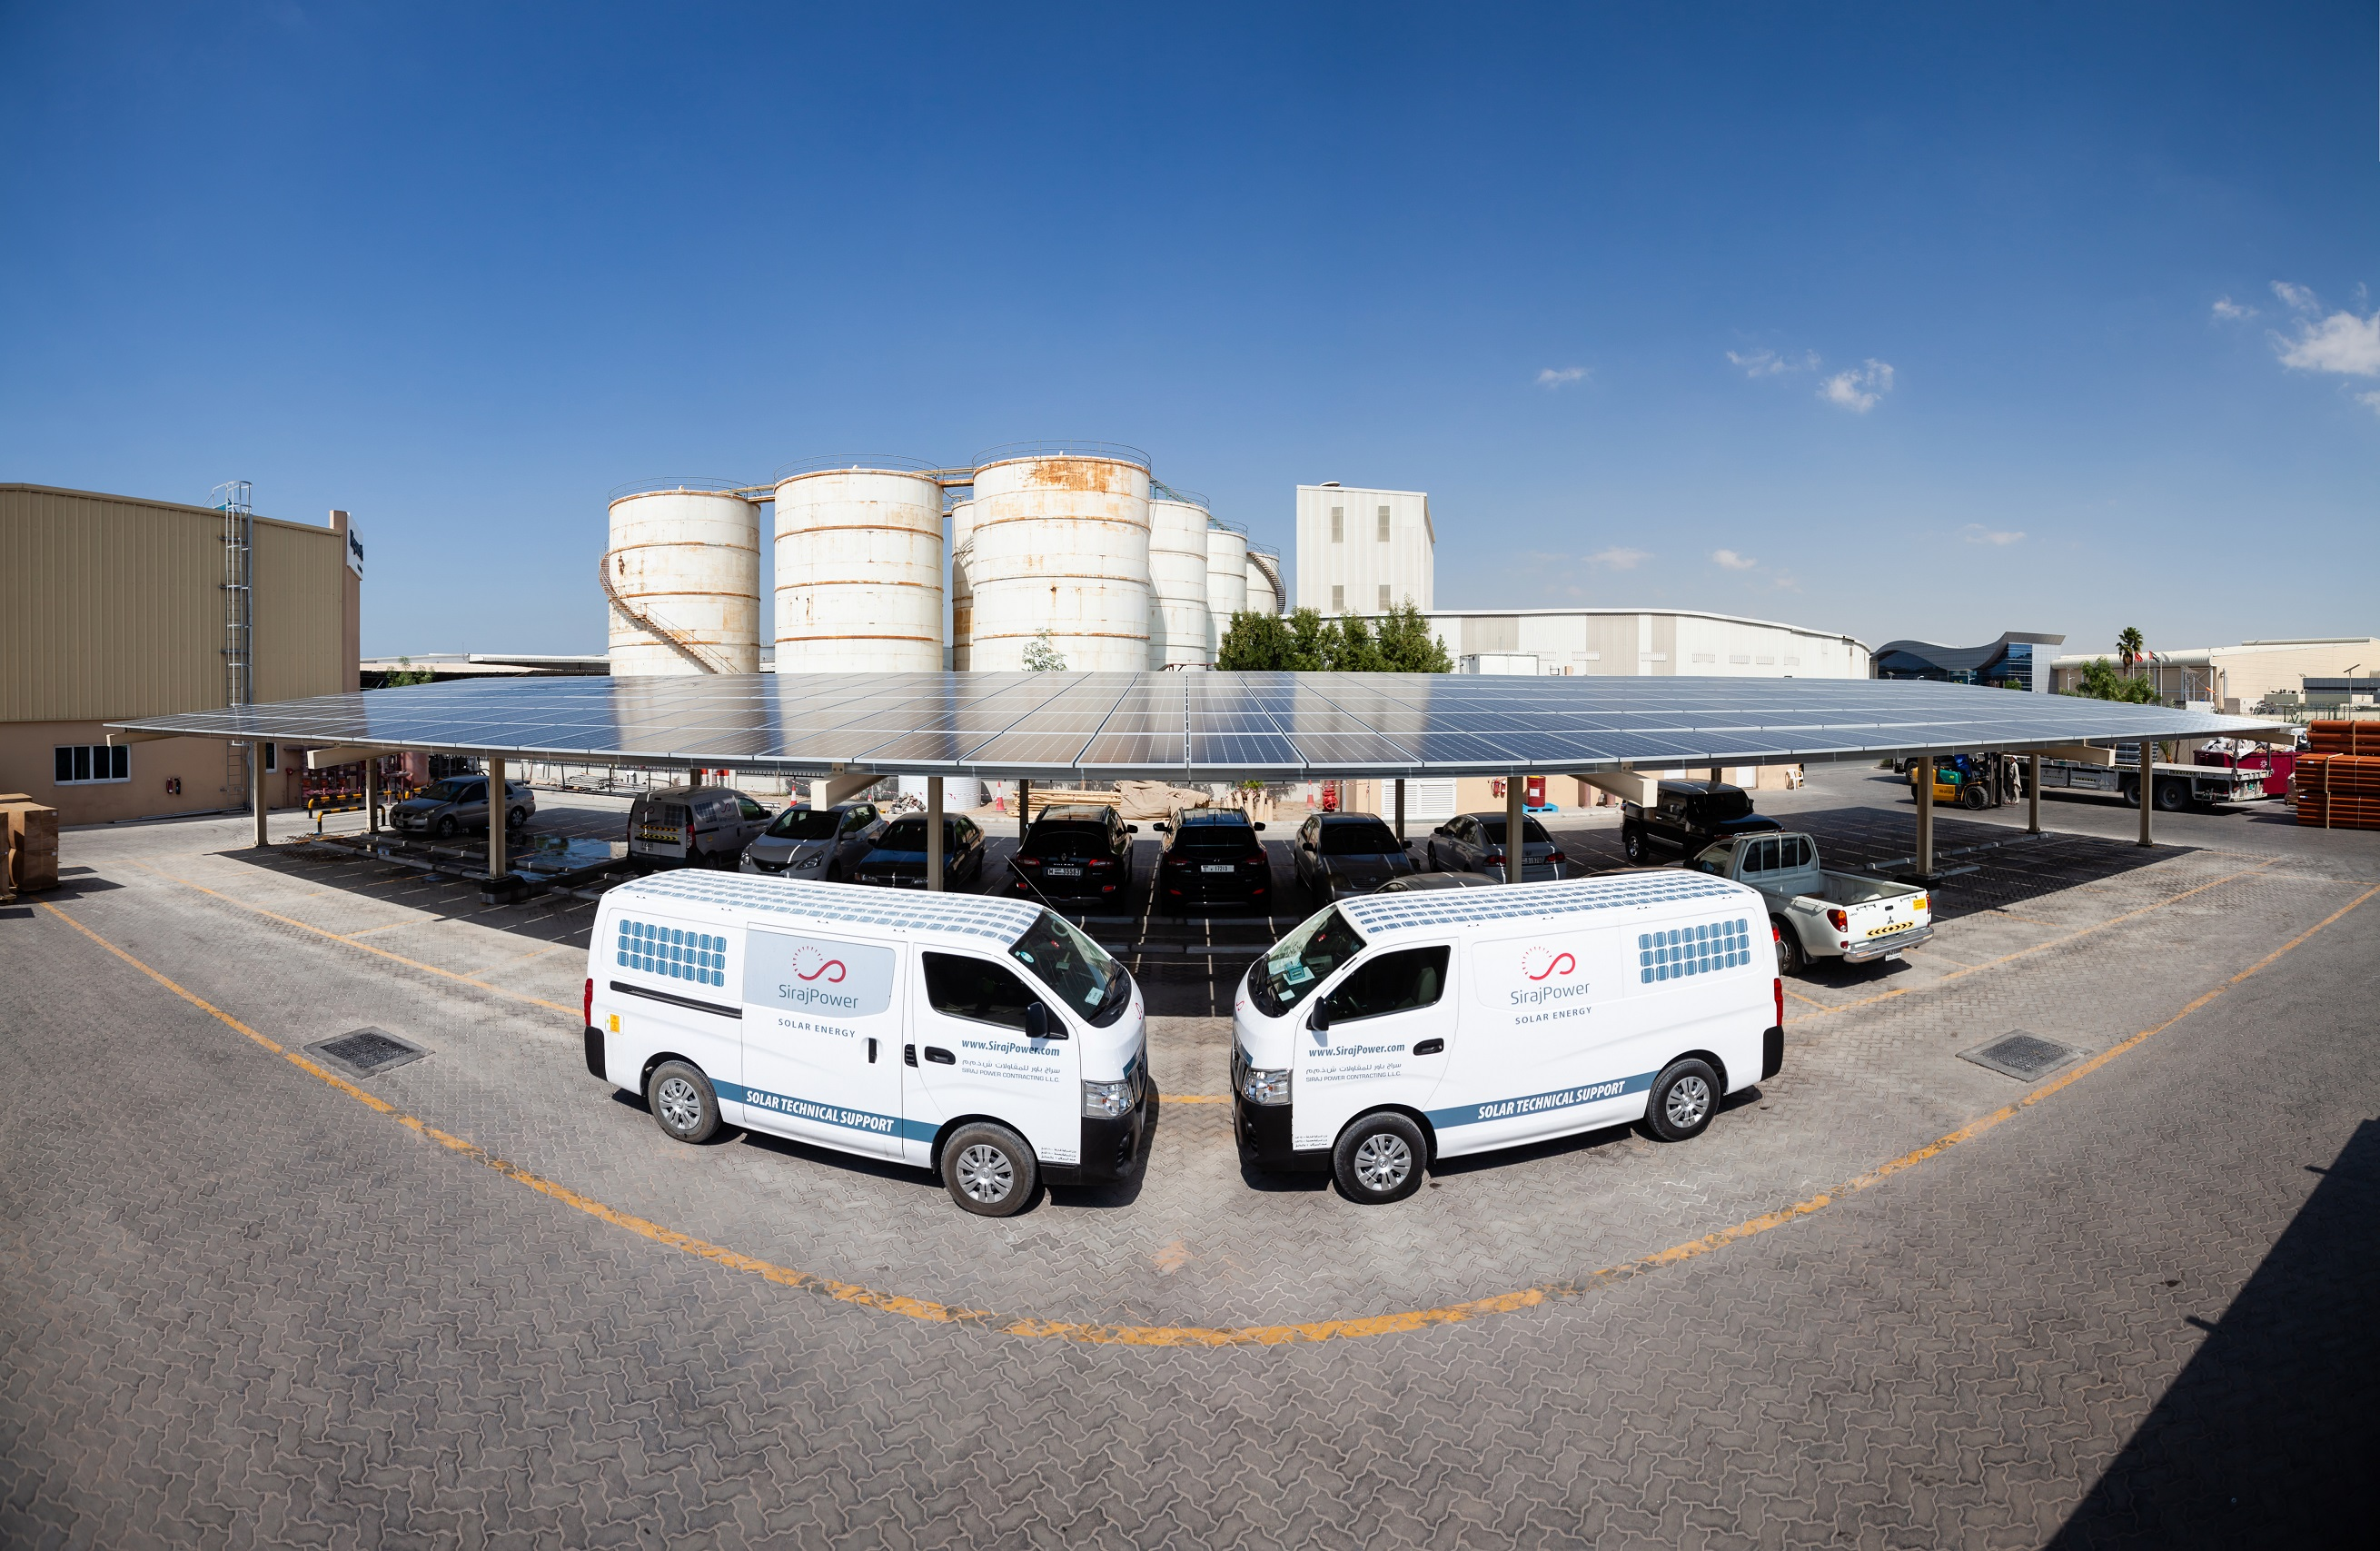 Karpot Uae's Sirajpower Launches Its First Solar Carport - News, Power - Utilities Middle East